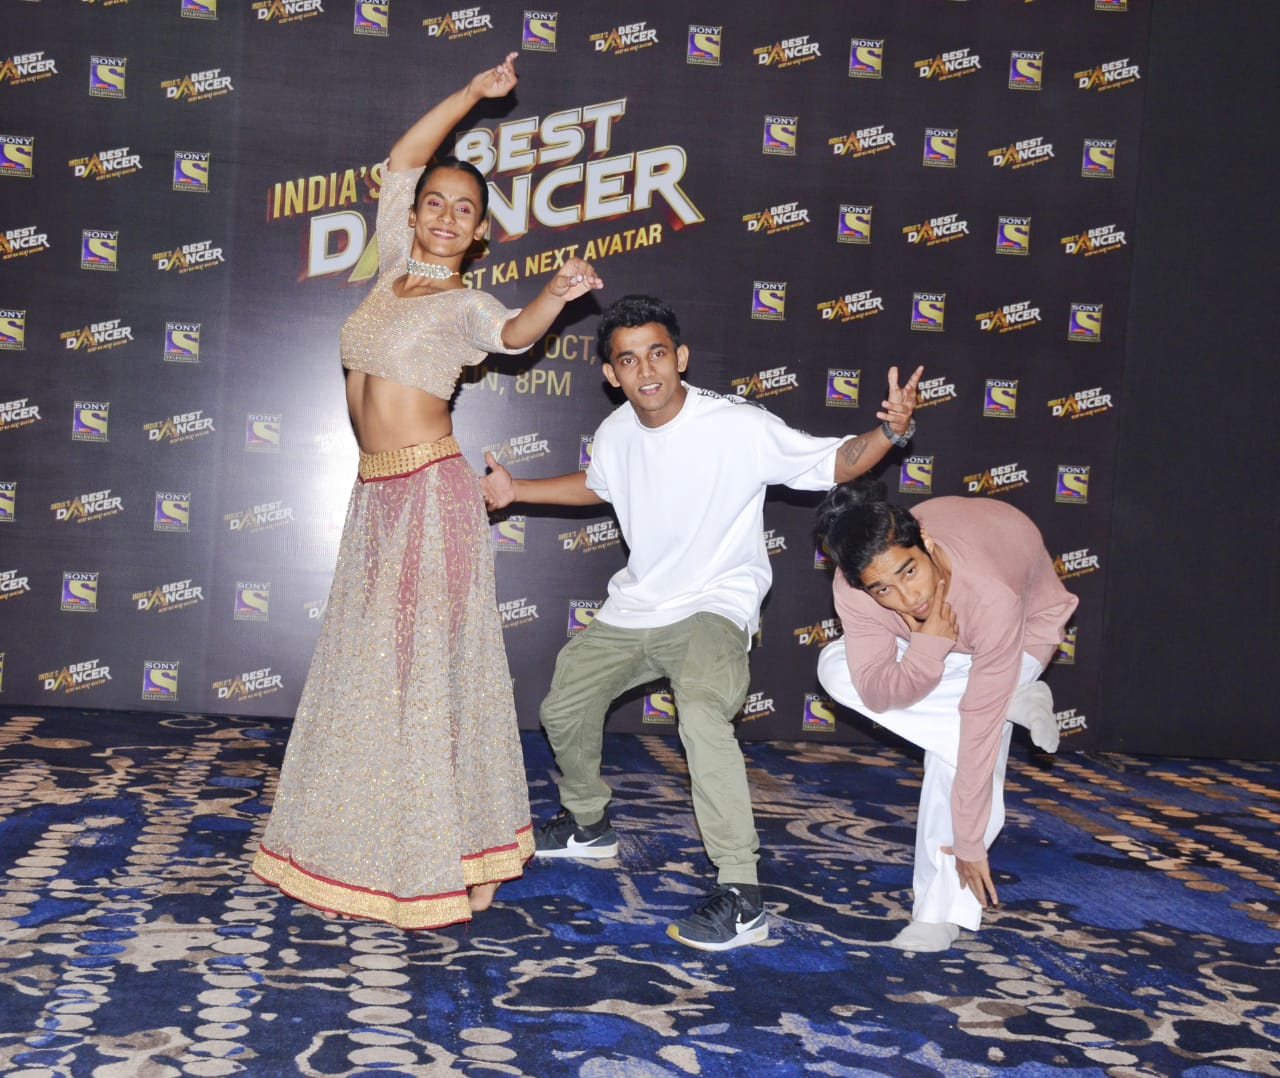 Contestants of India's Best Dancer – Season 2 bring along the flavor of #BestKaNextAvatar to Indore!